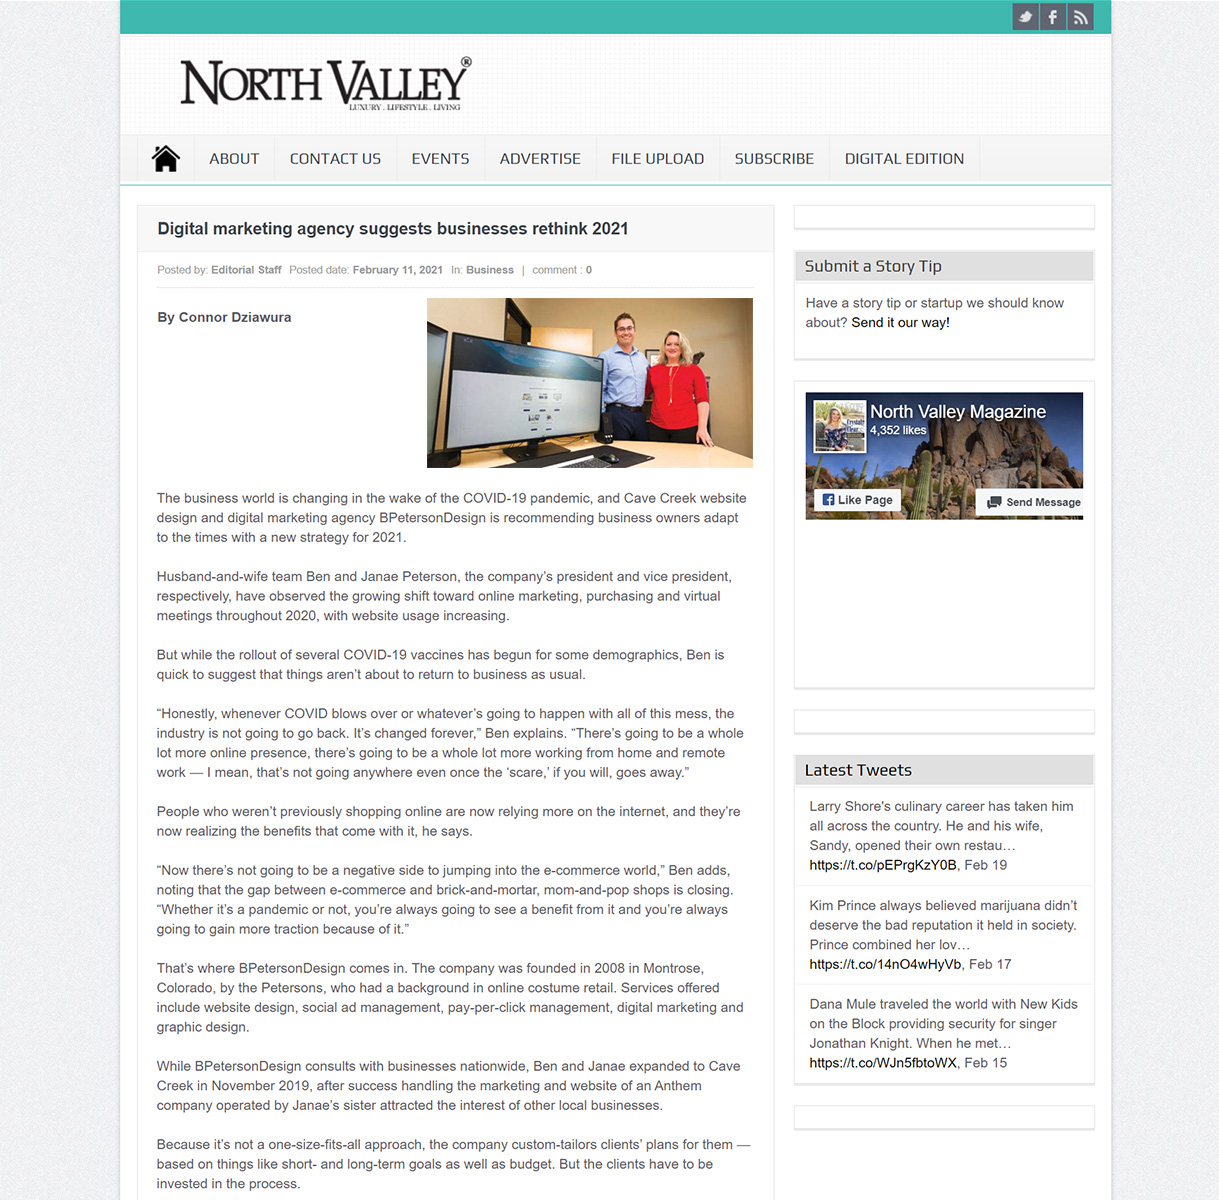 North Valley Magazine Featured Article